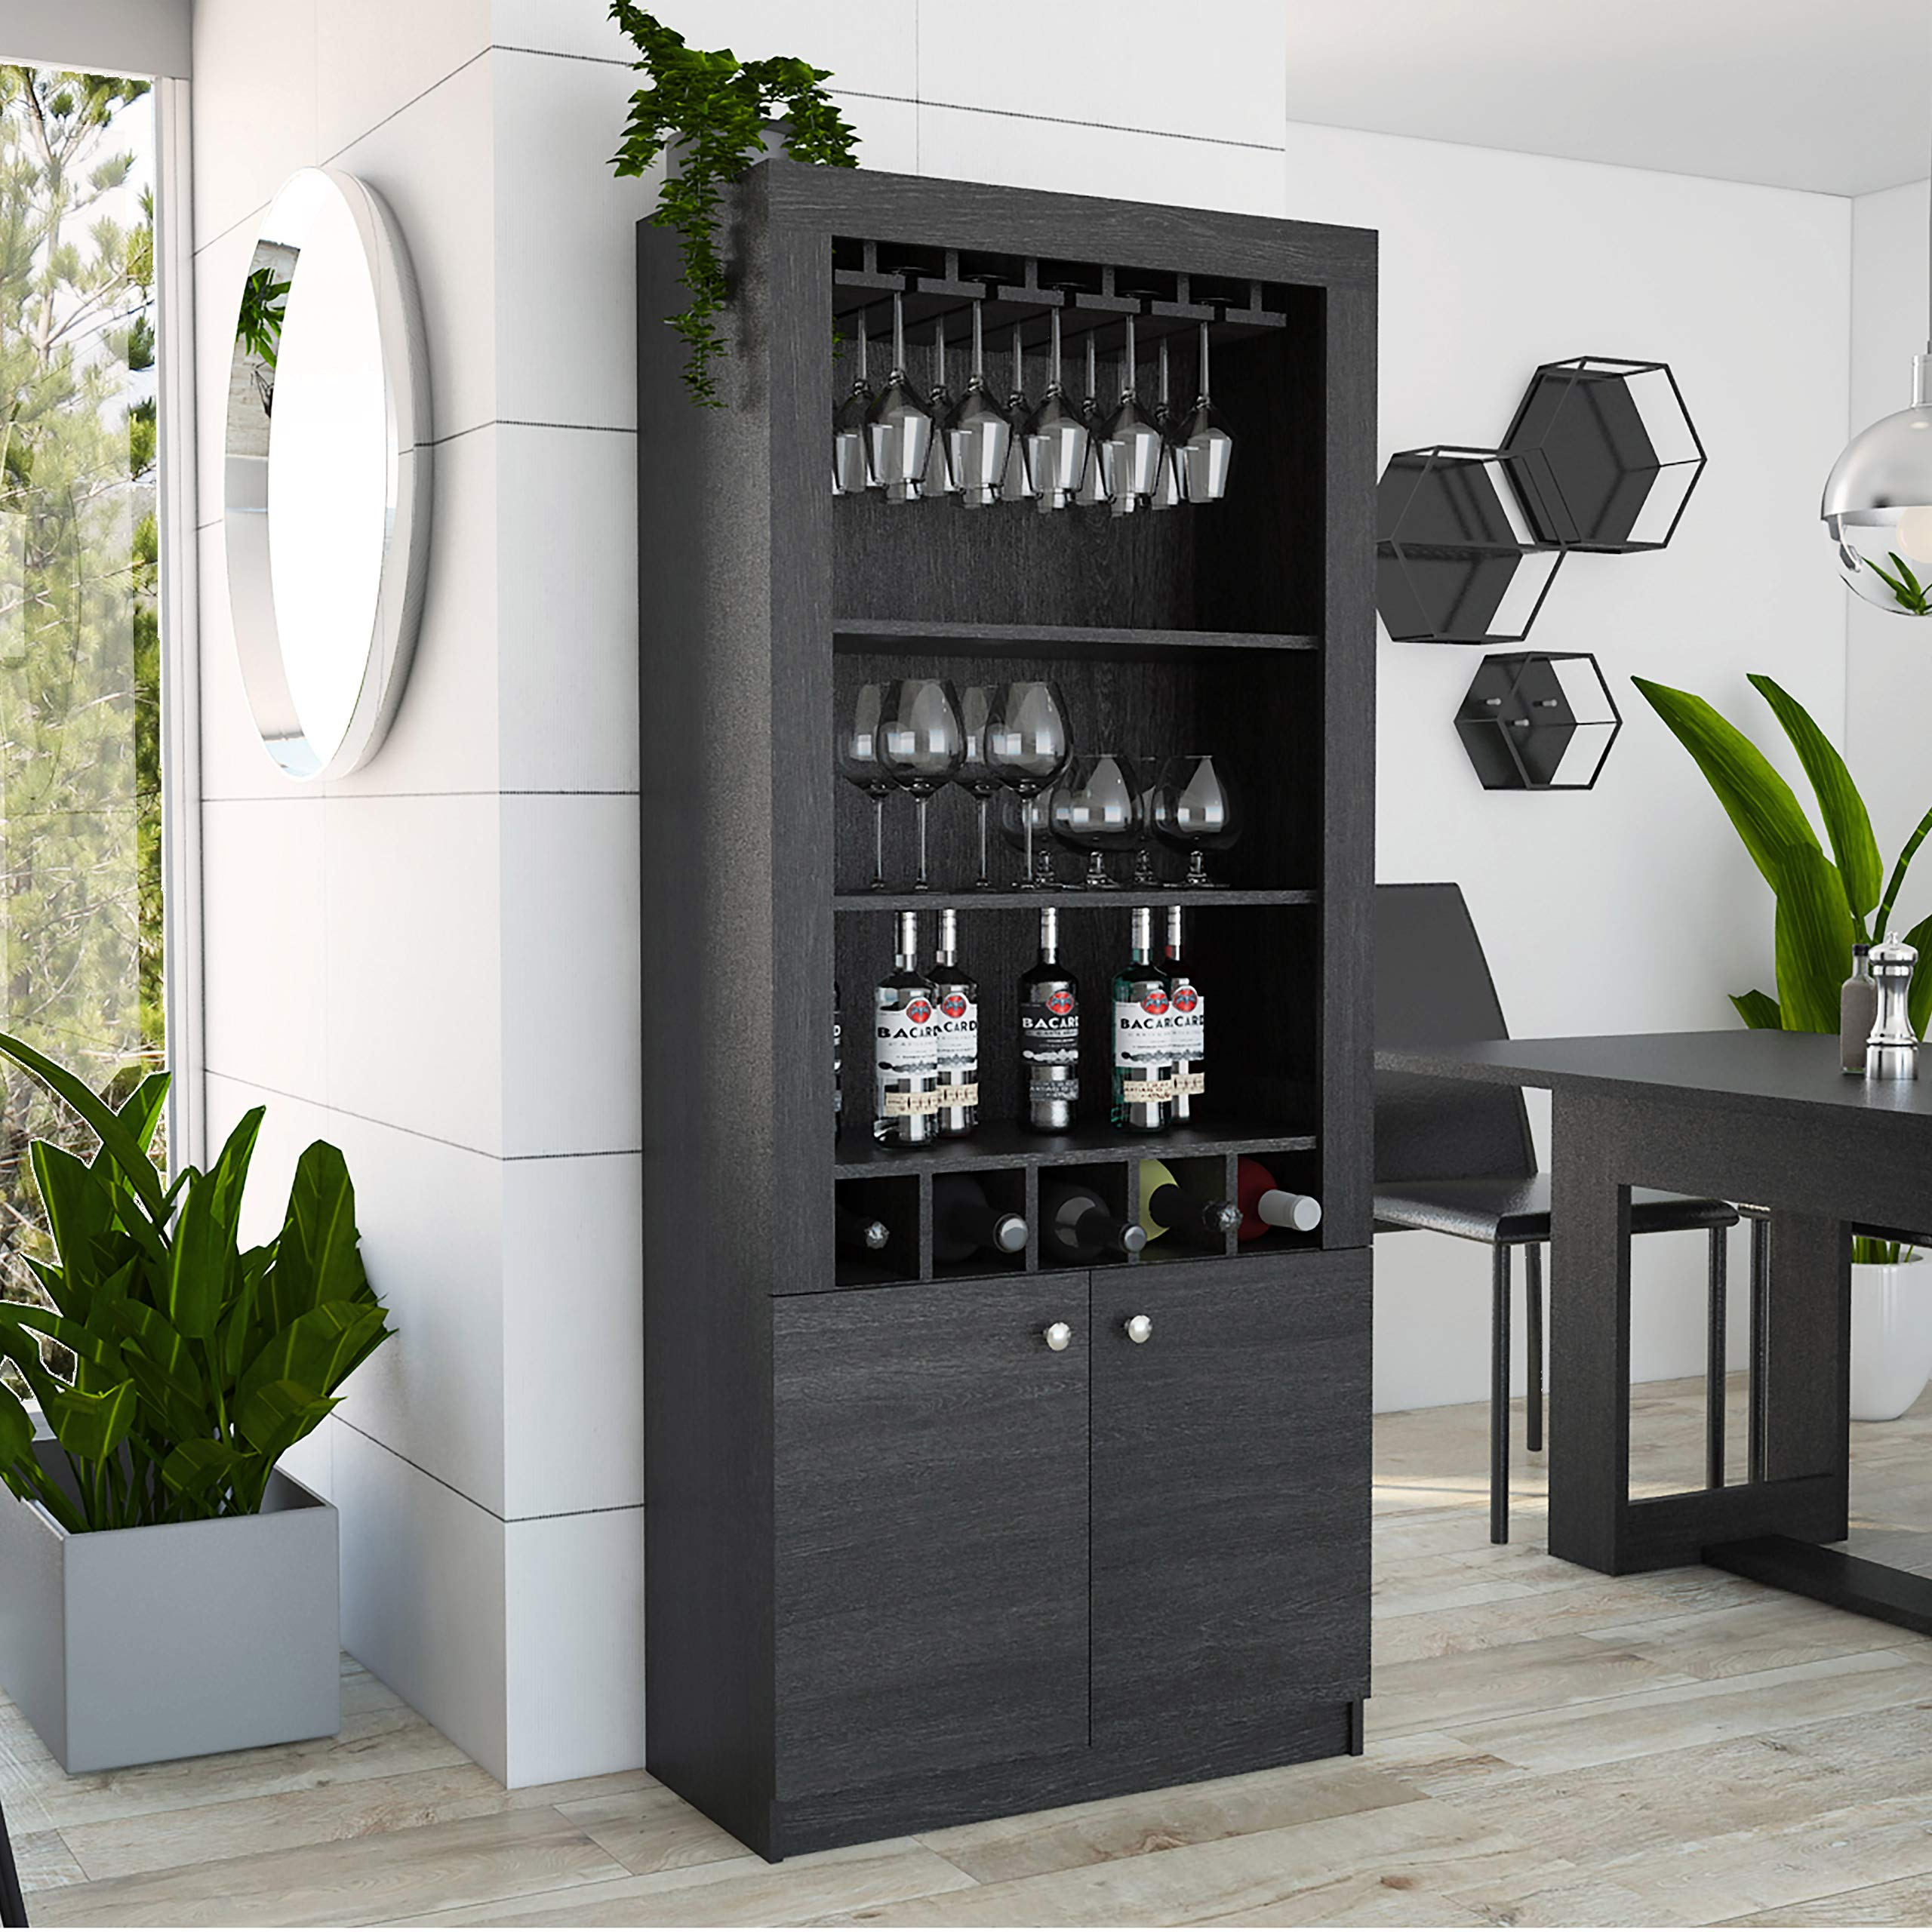 TUHOME Montenegro Collection Bar Cabinet/Home Bar Comes with a 5 Bottle Wine Rack, Storage Cabinets, 3 Shelves and a 15 Wine Glass Rack with a Modern Dark Weathered Oak Finish by TUHOME